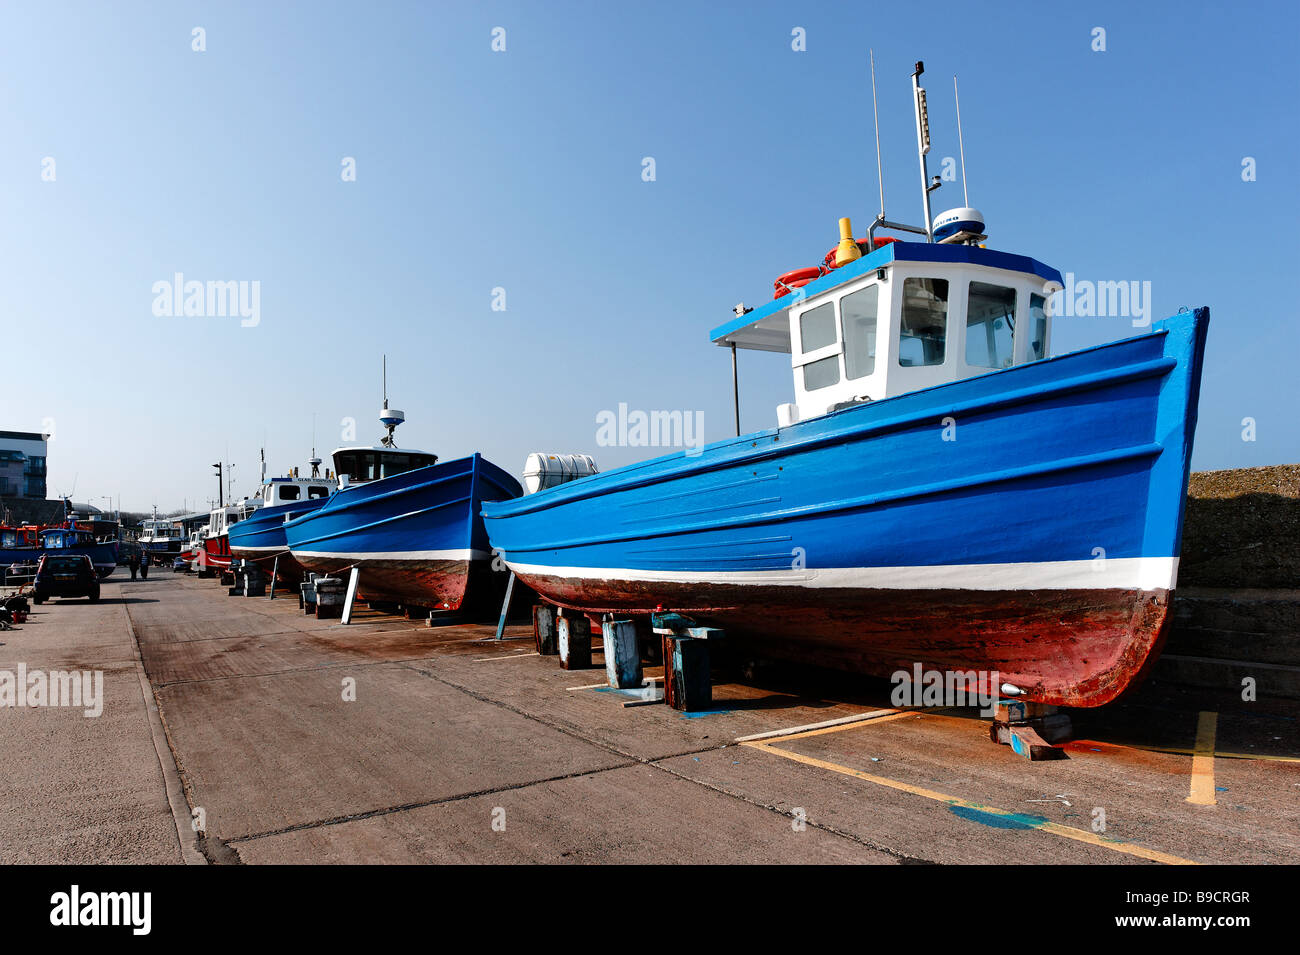 Boats laid up in boatyard in the harbour at Seahouses in Northumberland - Stock Image